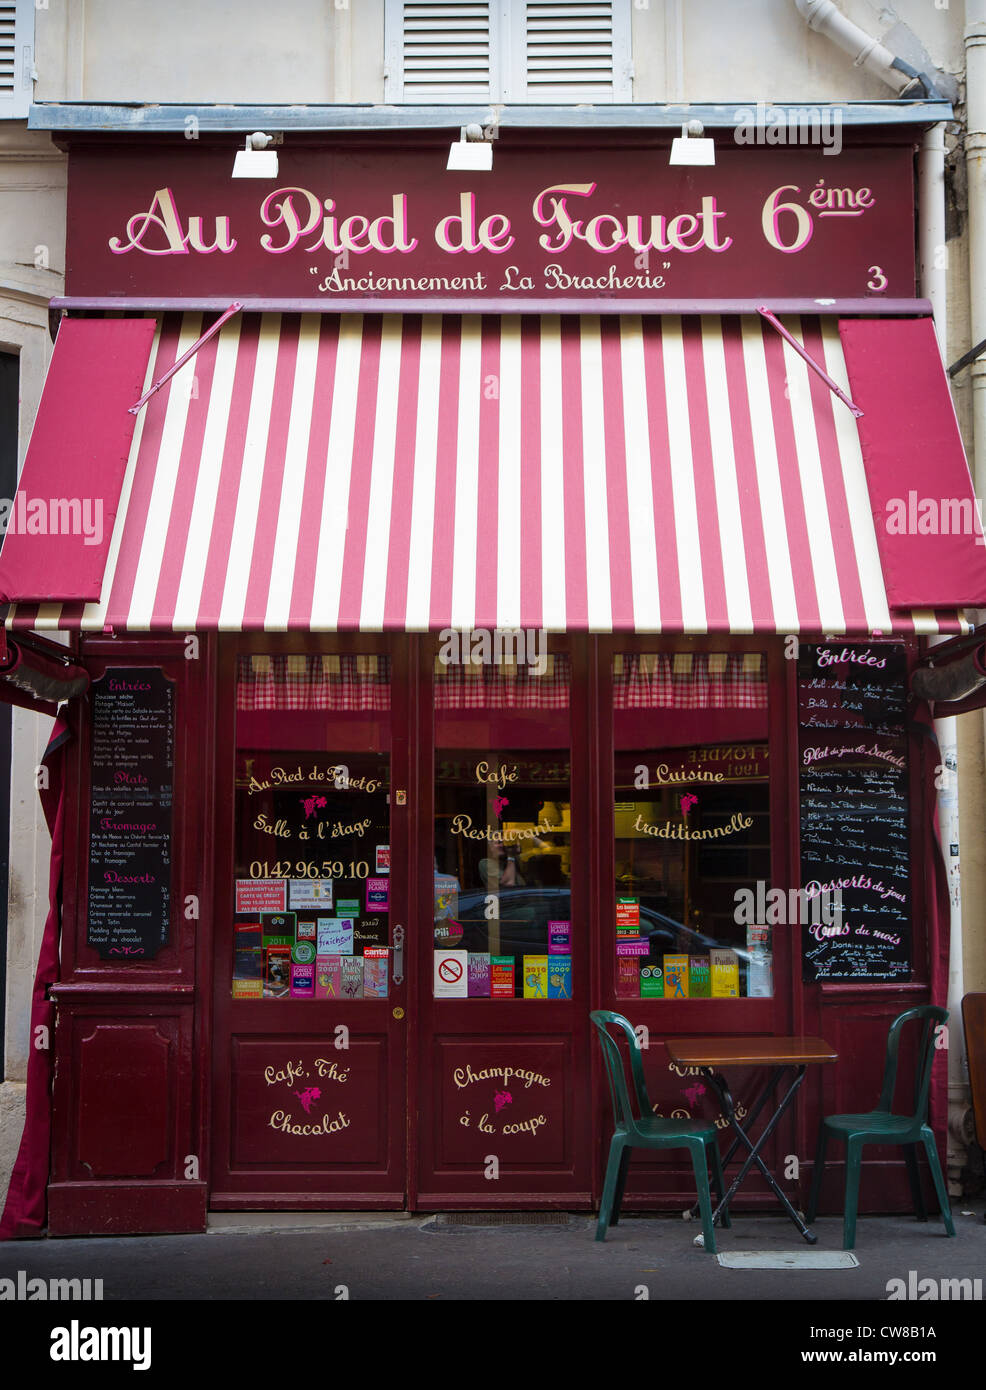 A small cafe, or bistro, in Paris, France - Stock Image